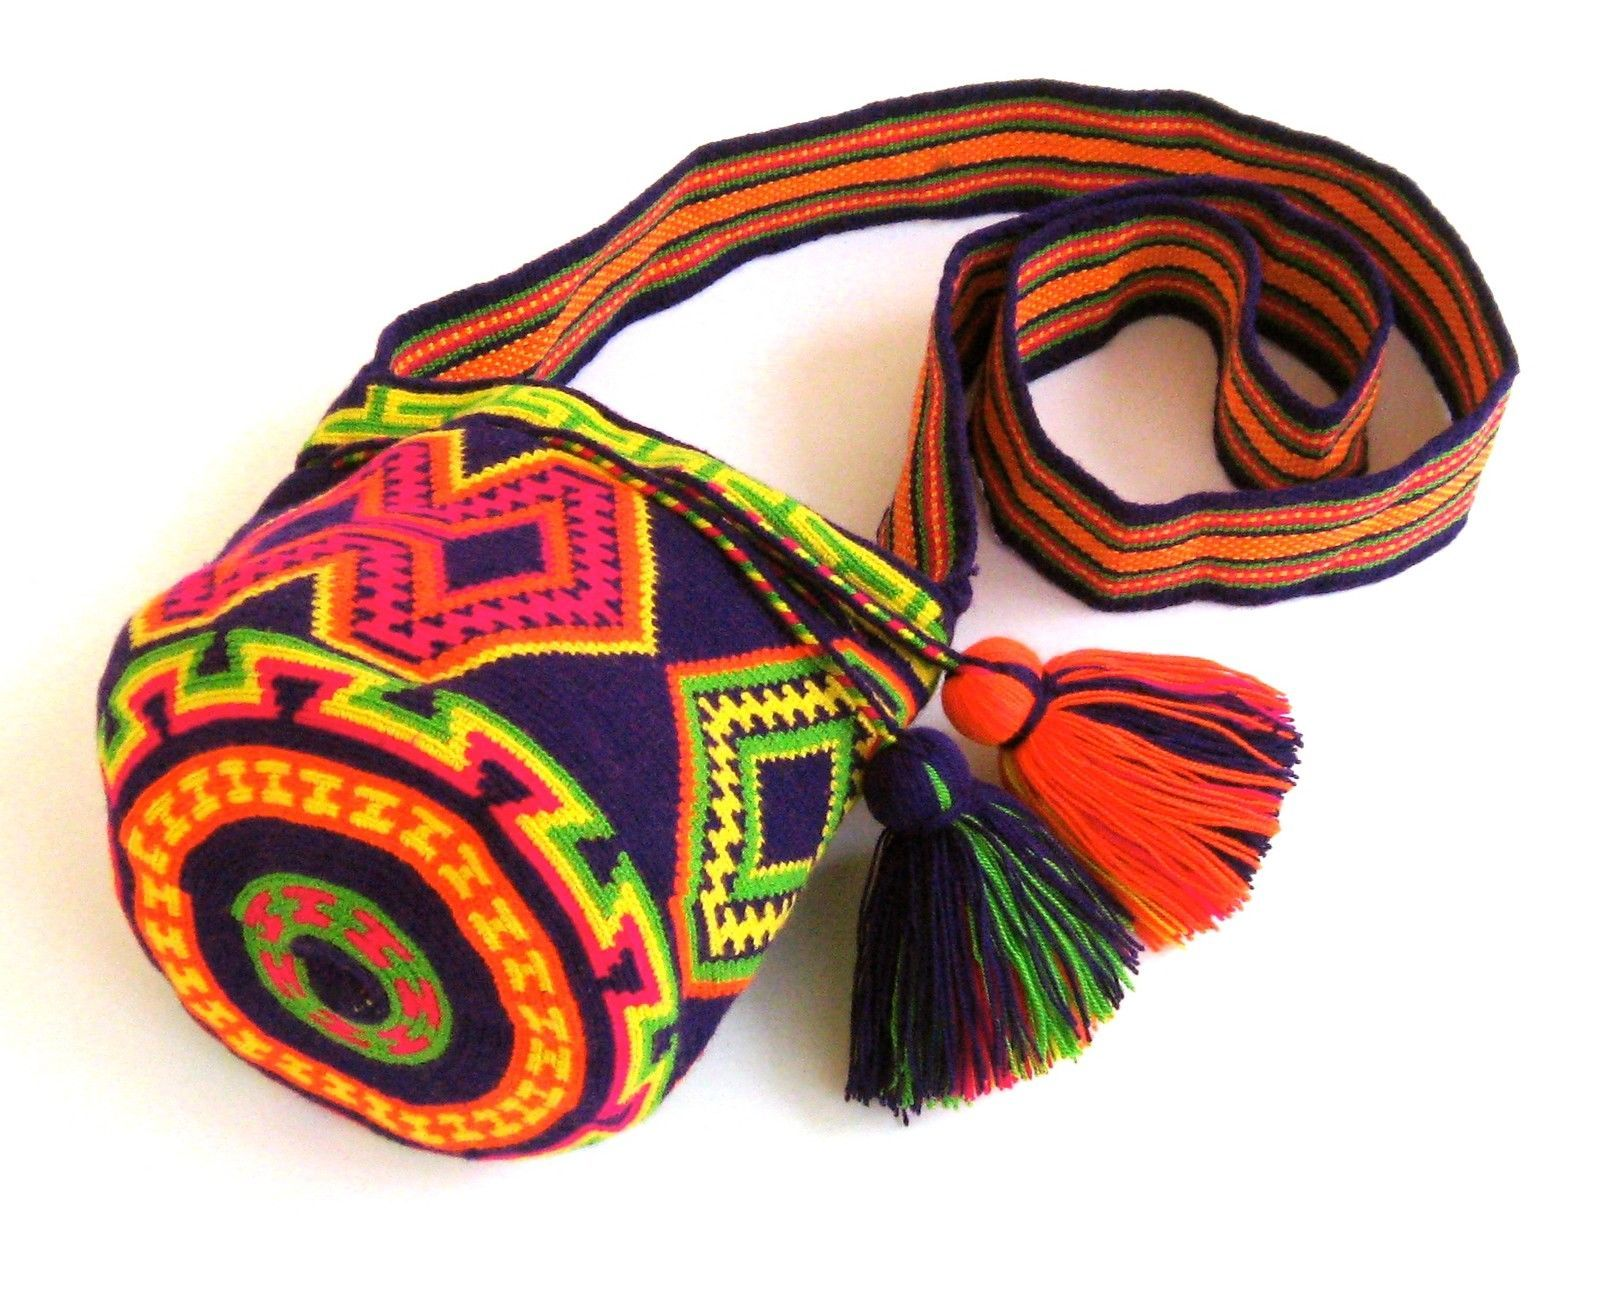 small resolution of mochila wayuu small size bag tight 1 2 stitch crochet handmade ebay 64 00